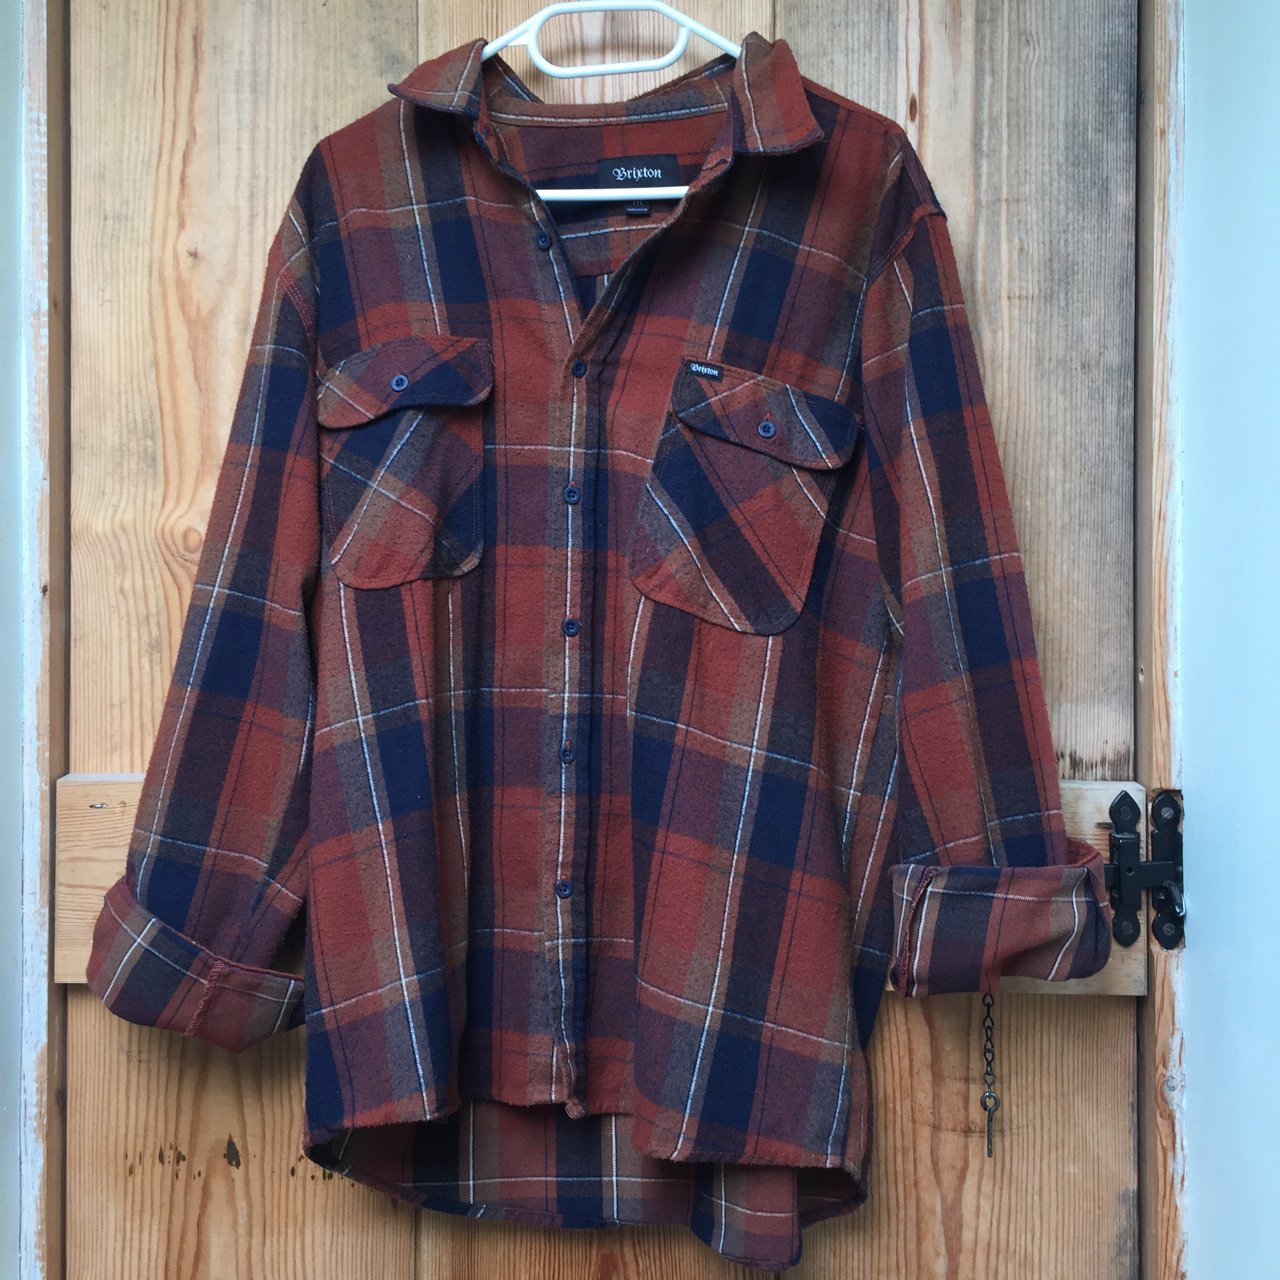 9e4a2f38d4 Brixton shirt. Really soft material. Almost woolly. Again I - Depop